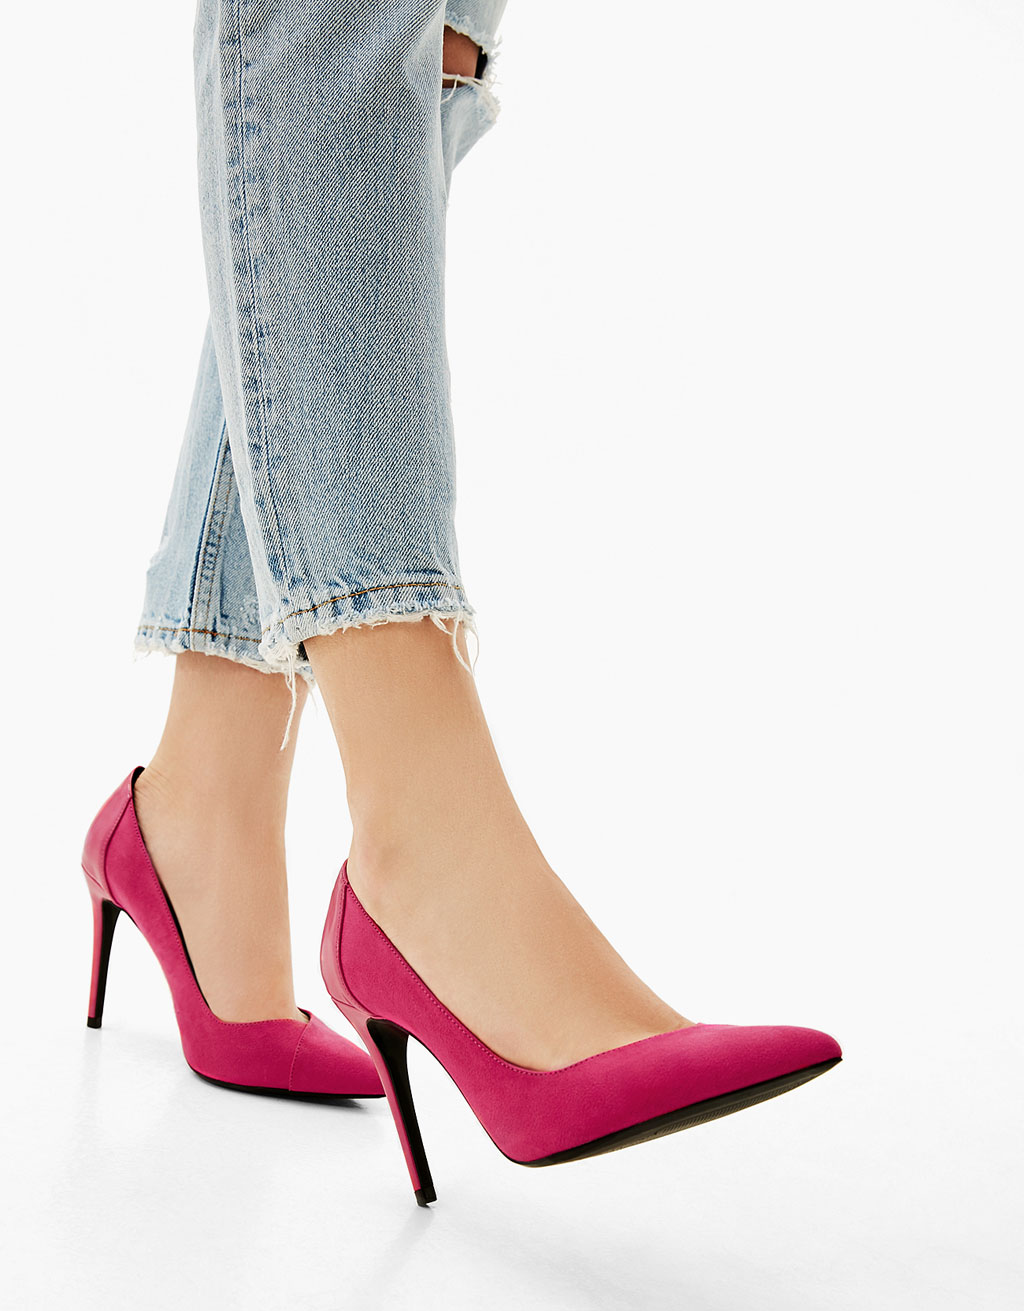 Contrast stiletto heel shoes